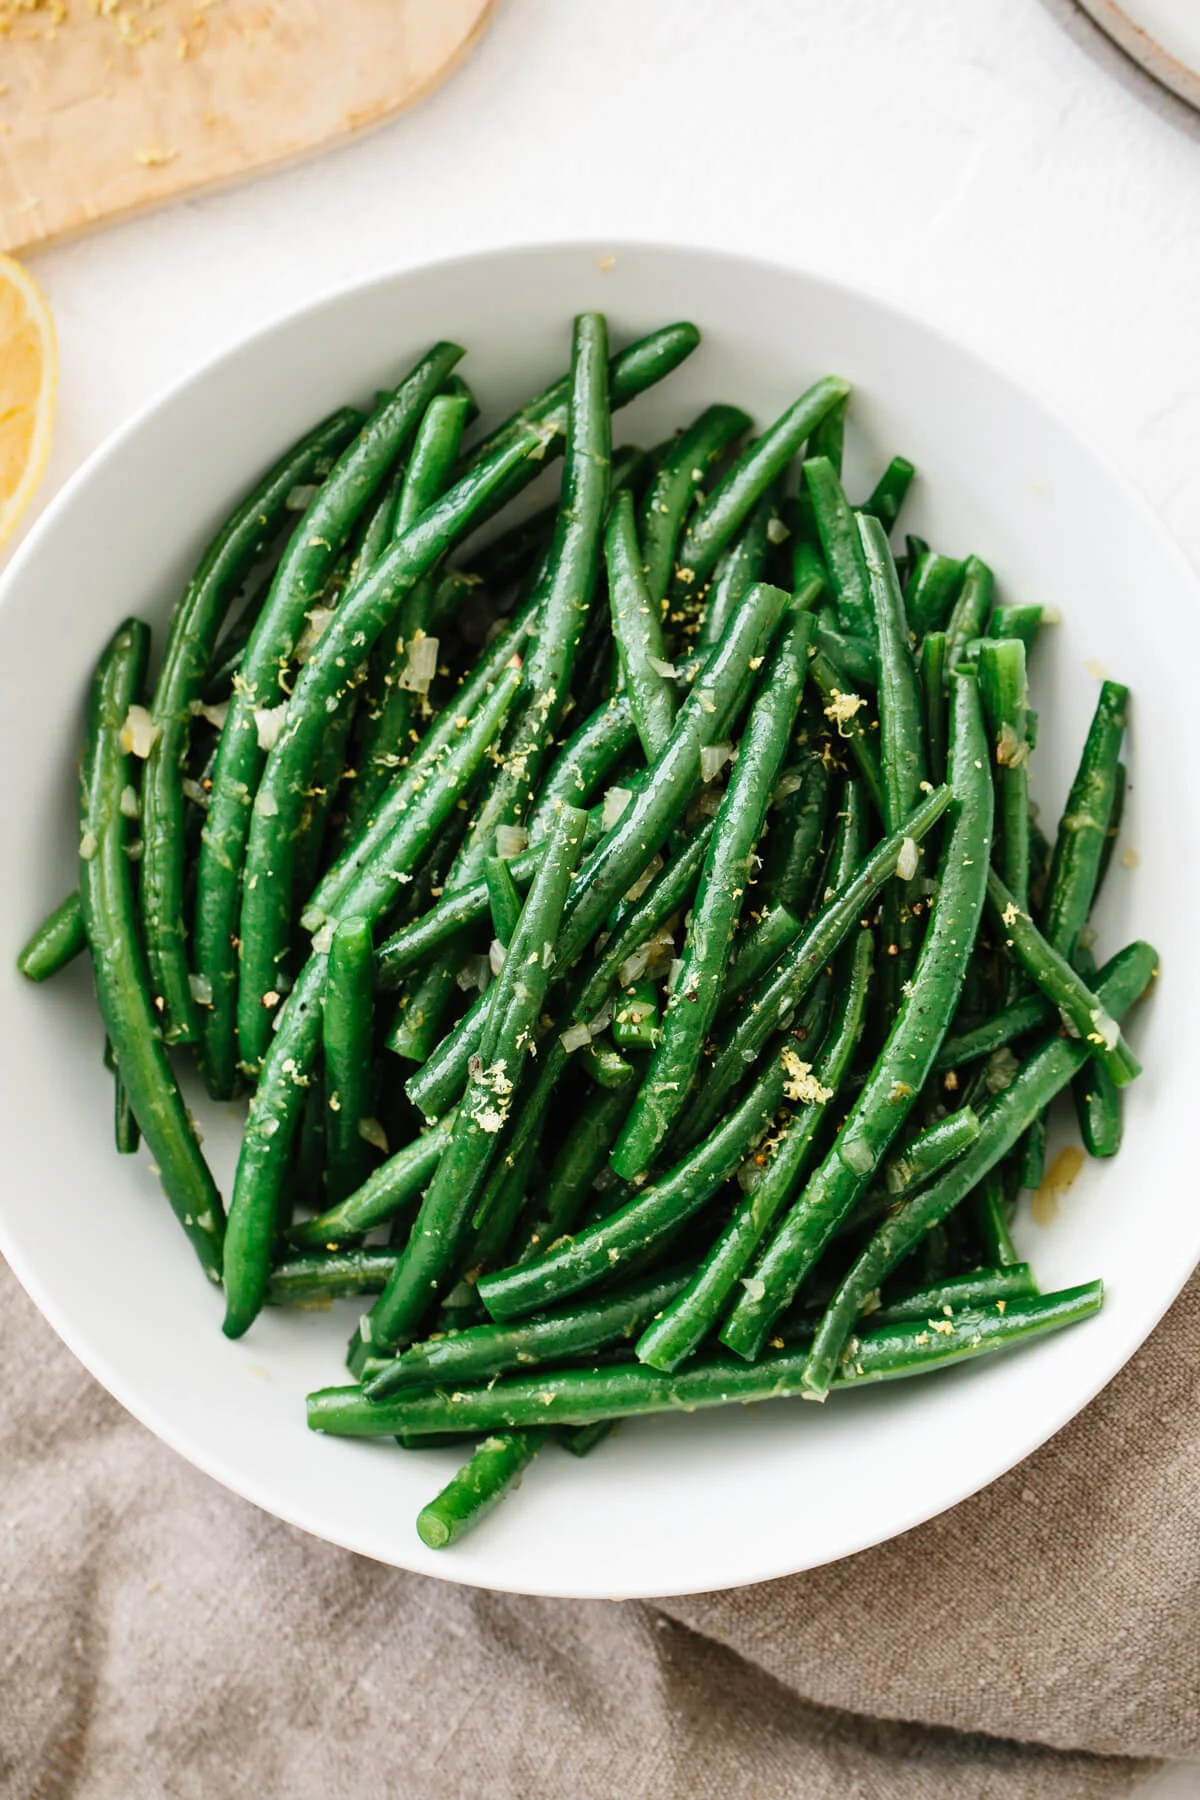 Green beans in a white bowl.